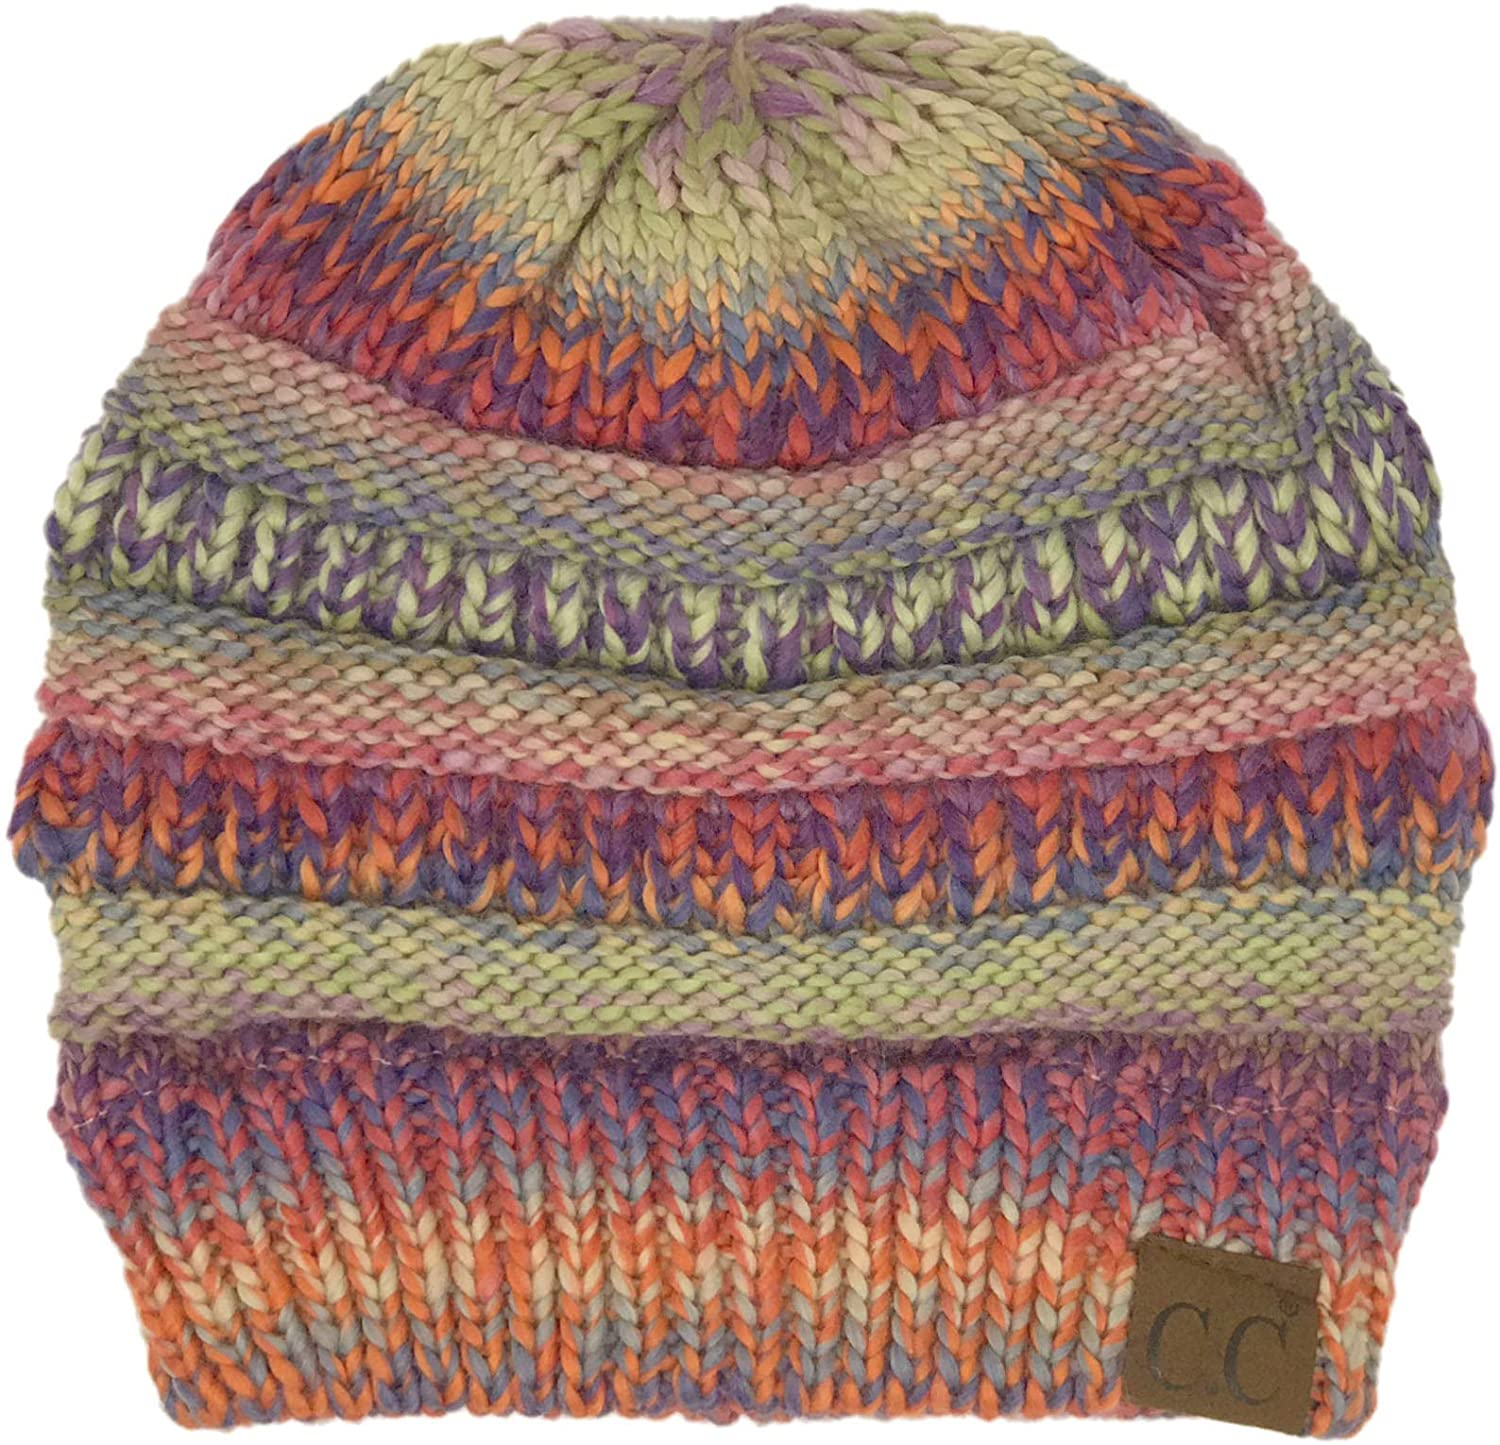 CC Classic Winter Fall Trendy Chunky Stretchy Cable Knit Beanie Hat